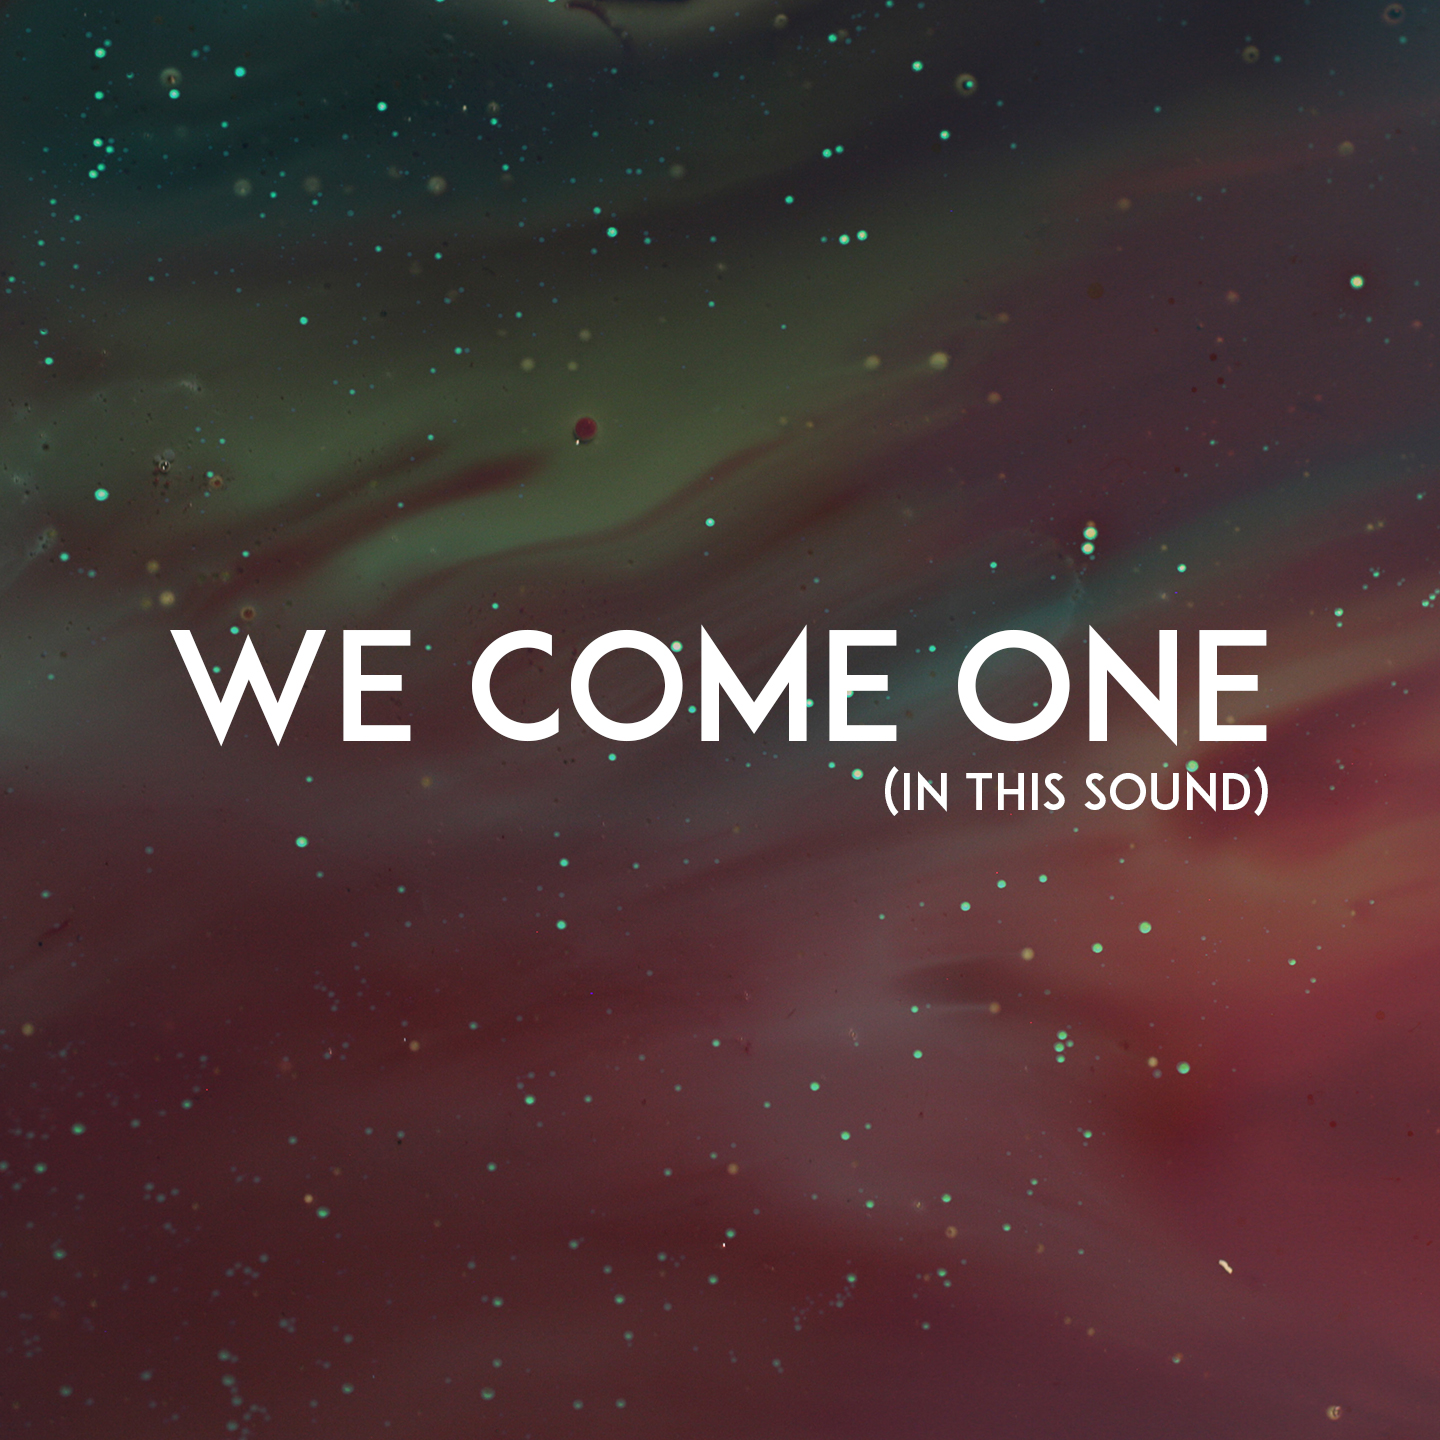 Erik Thunberg - We Come One (In This Sound)